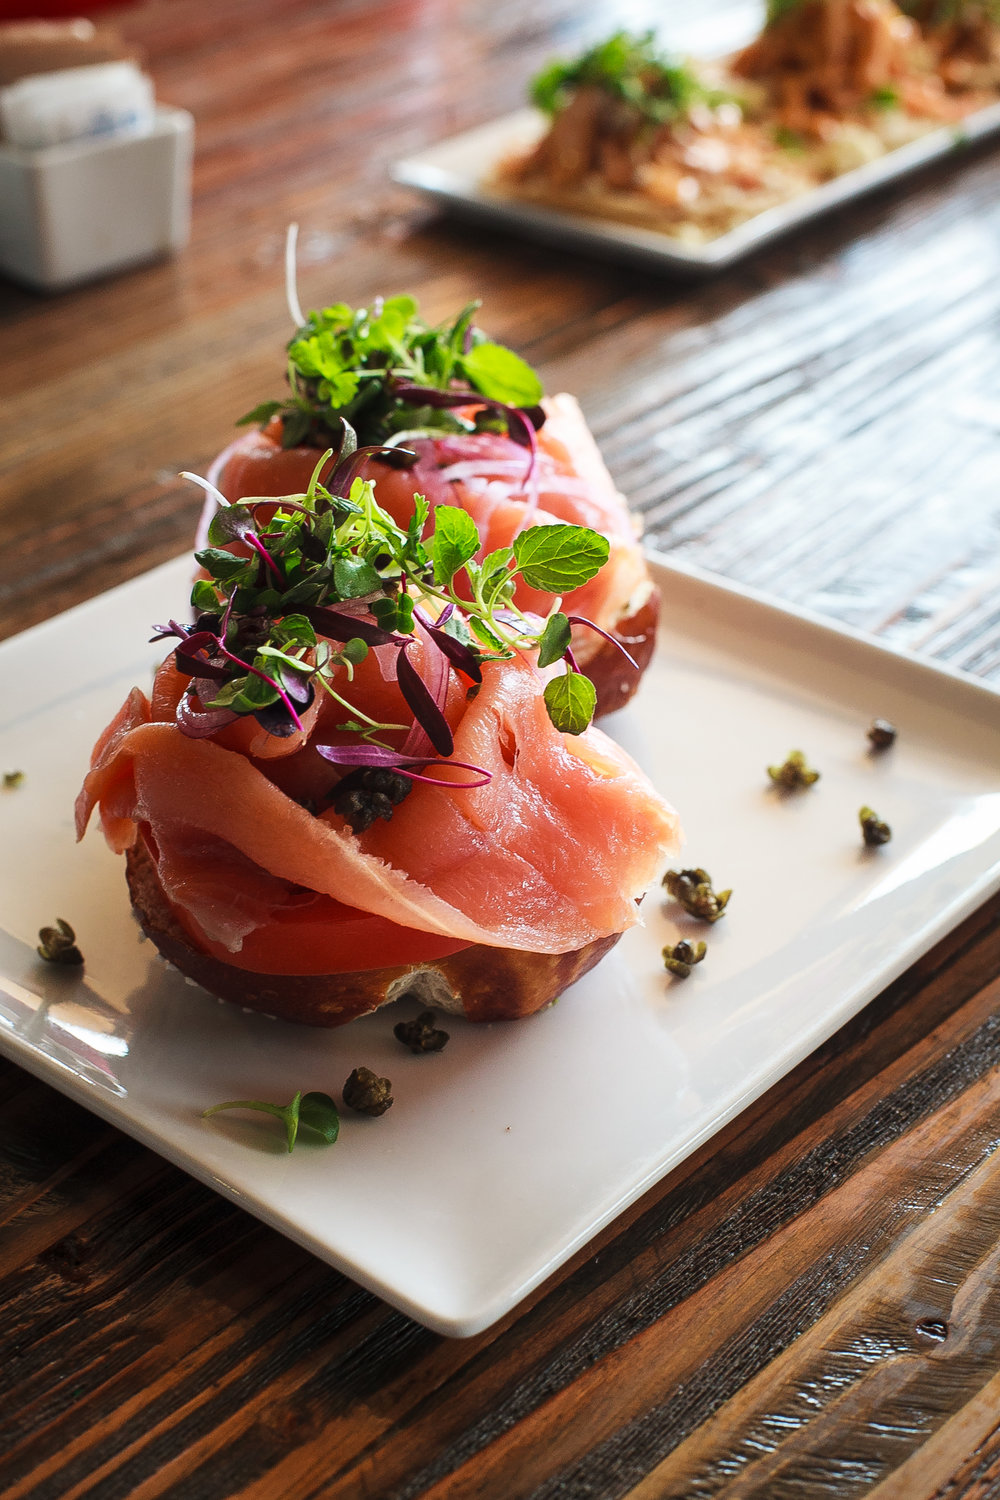 CRAFTkitchen Las Vegas Smoked Salmon.jpg